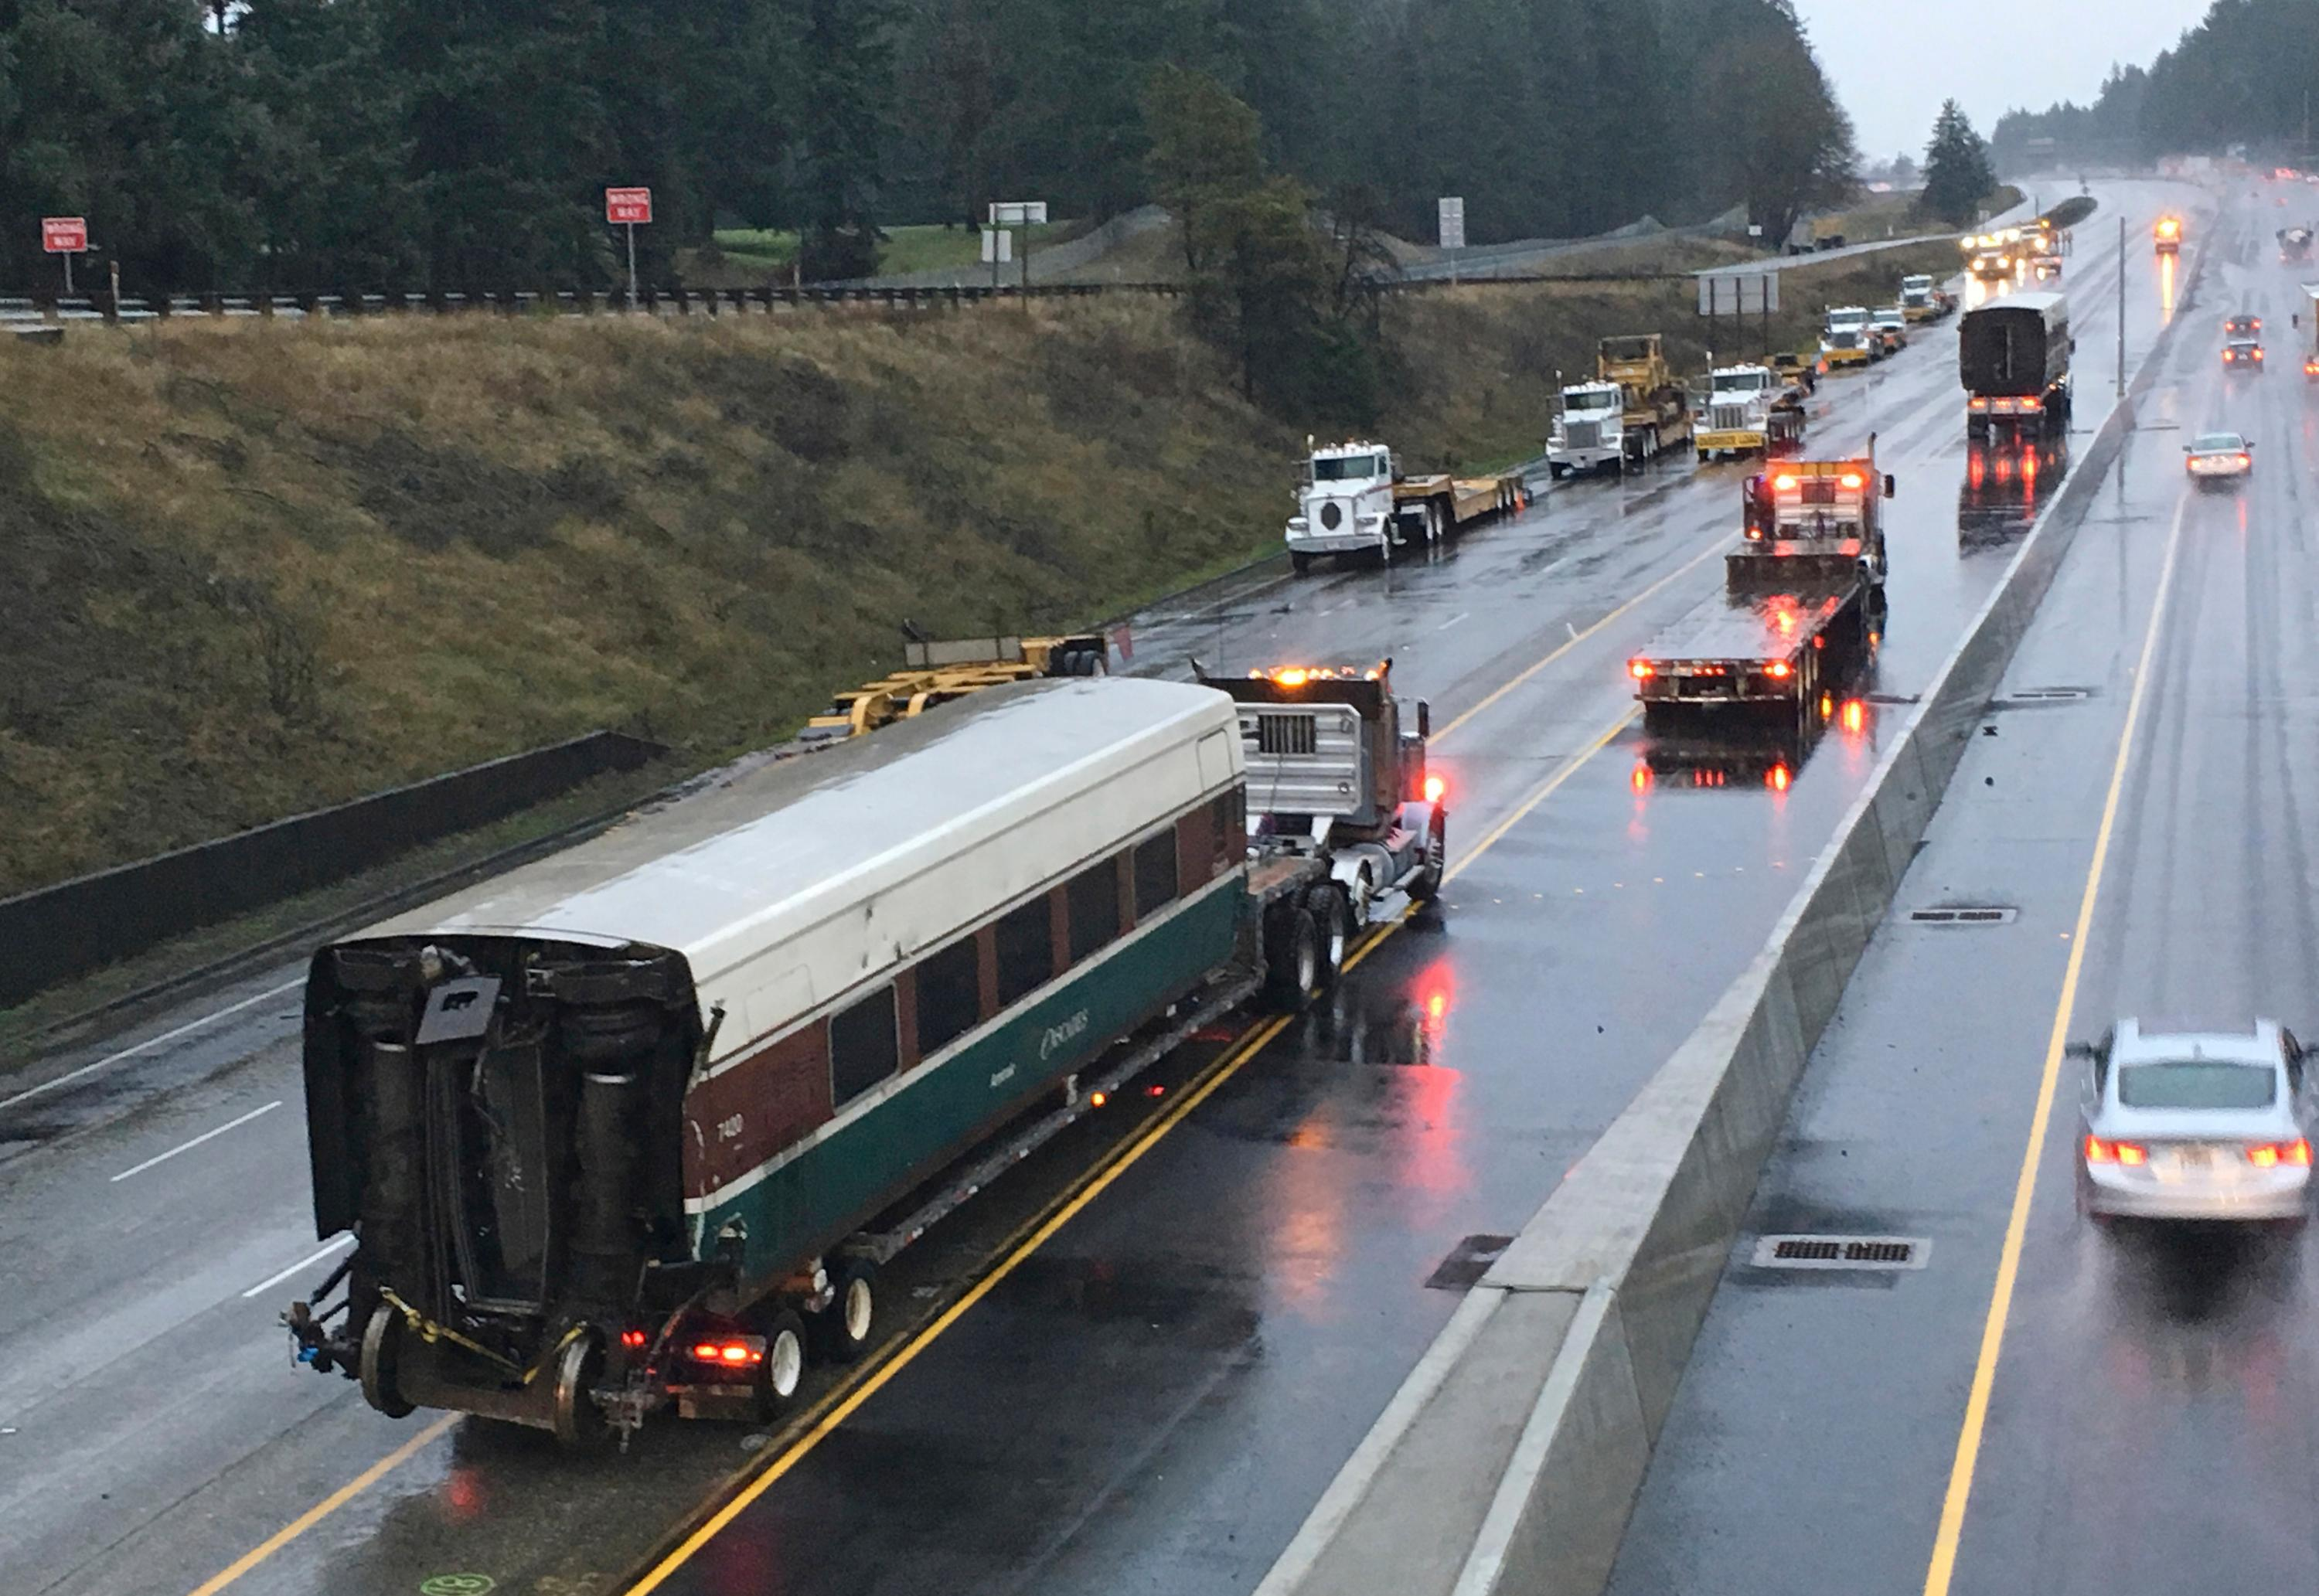 An Amtrak train car that careened off an overpass south of Seattle is hauled away on Interstate 5 Tuesday, Dec. 19, 2017, in Dupont, Wash.  Federal investigators say they don't yet know why the train was traveling 50 mph over the speed limit when it derailed Monday, killing some people and injuring dozens.  (AP Photo/Haven Daley)